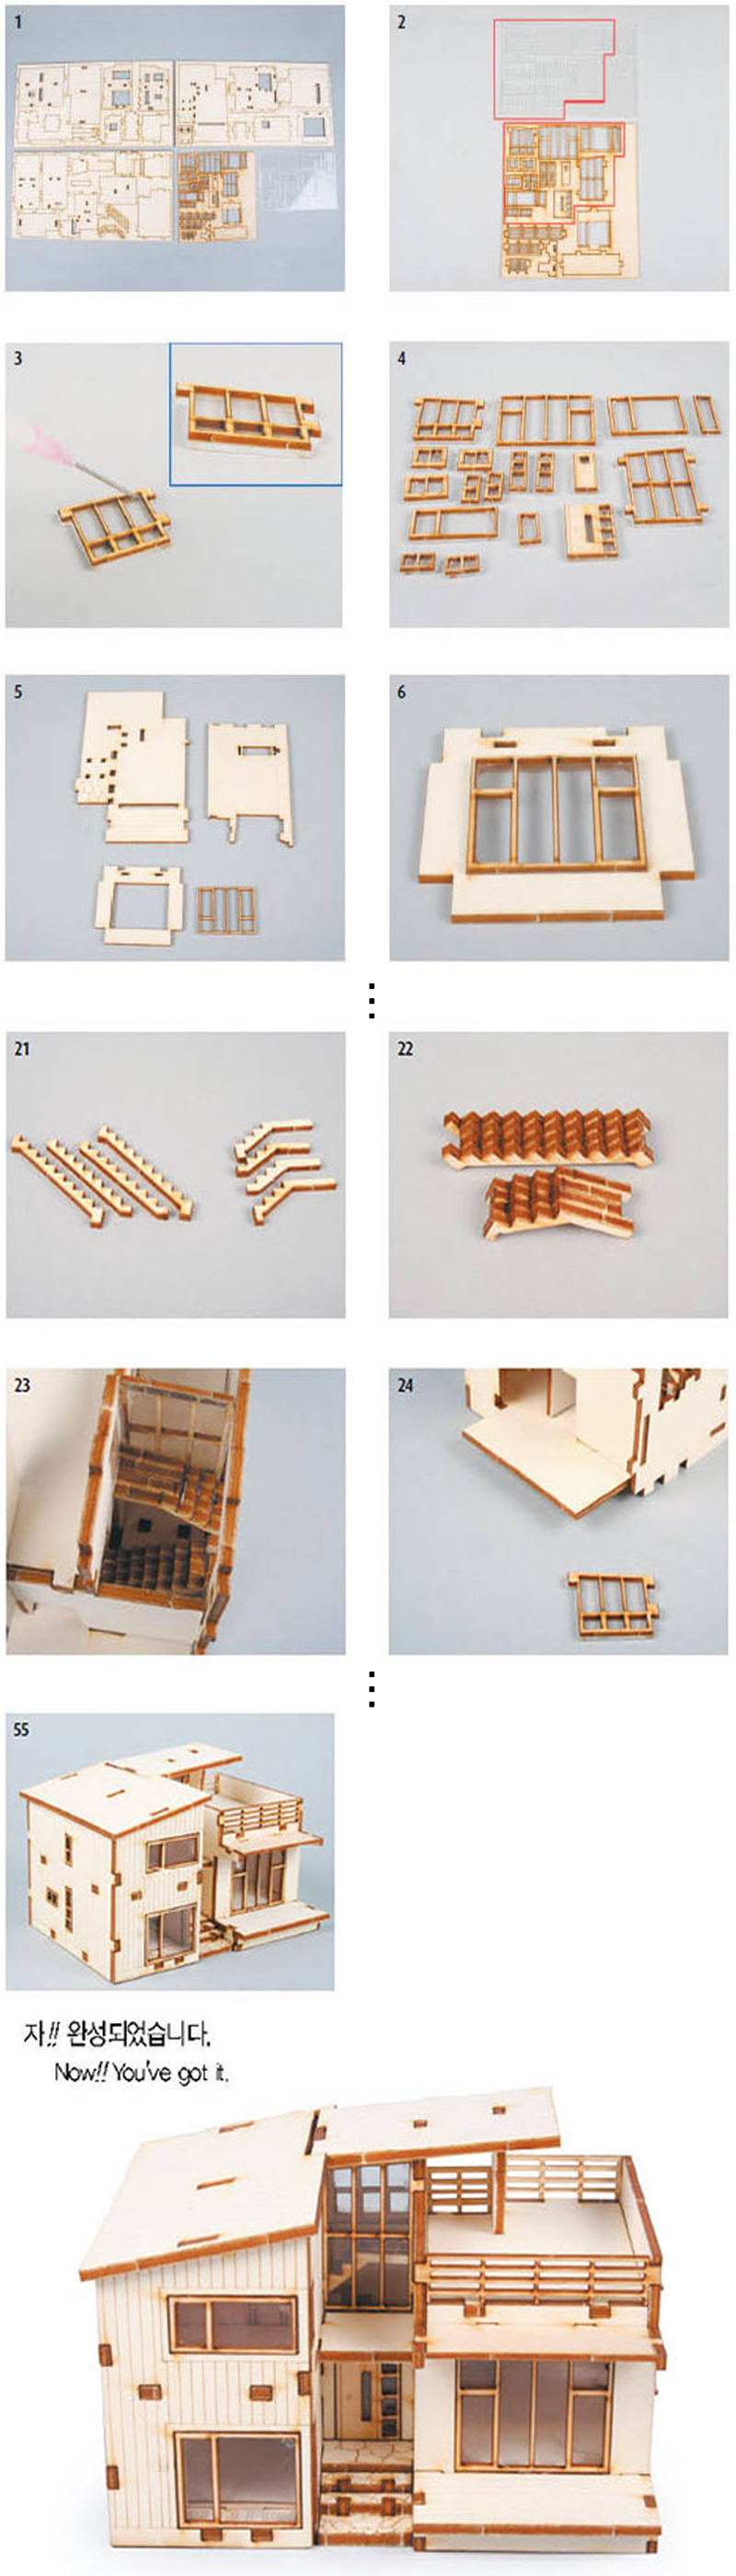 Modern style house wooden model kit ho 3d wood miniature for Modern house gifts